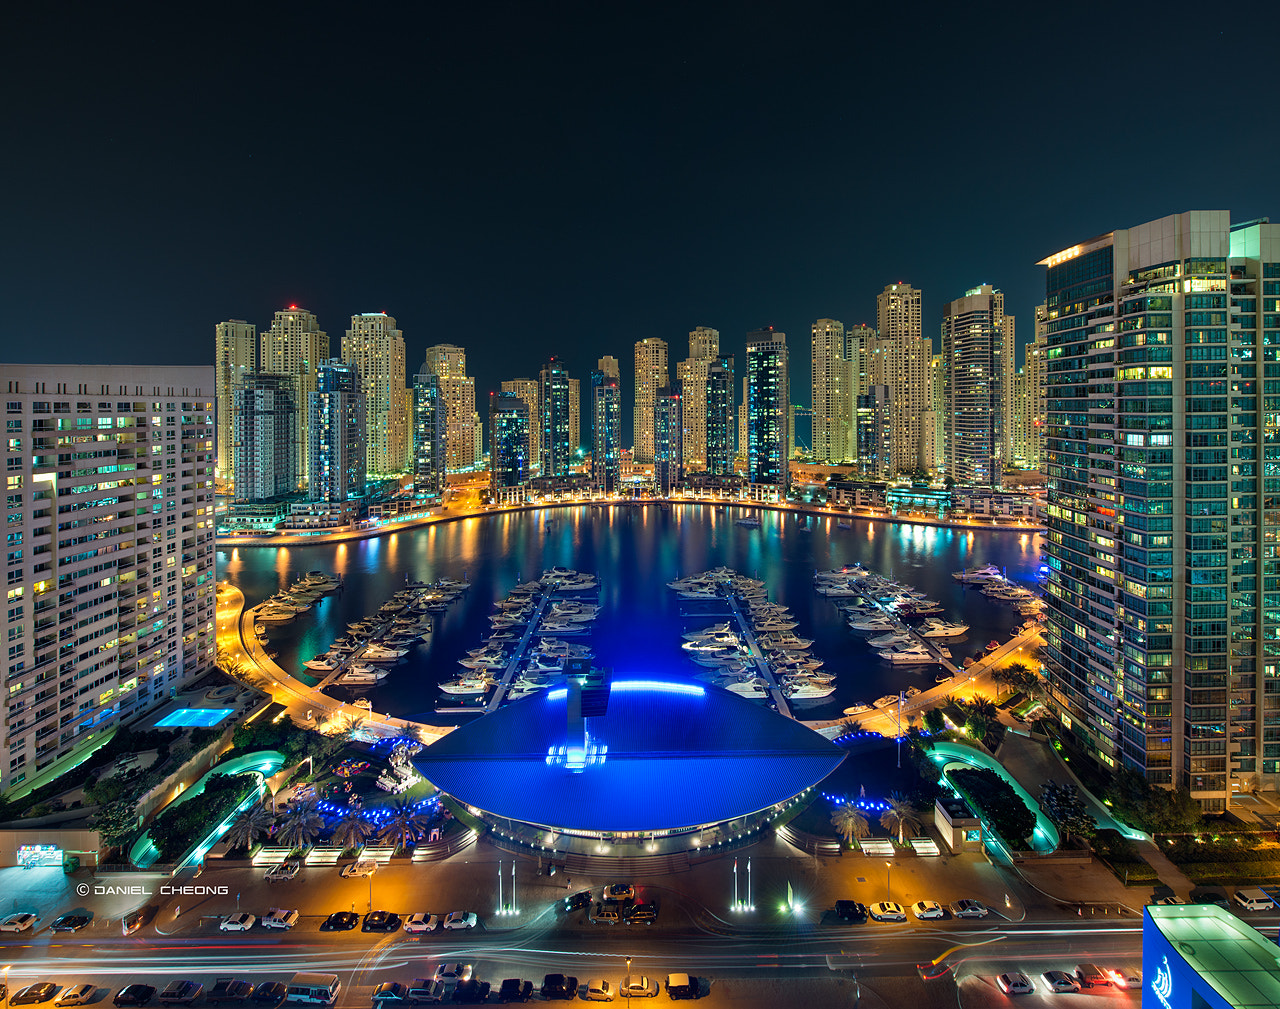 Photograph The Yacht Club by Daniel Cheong on 500px